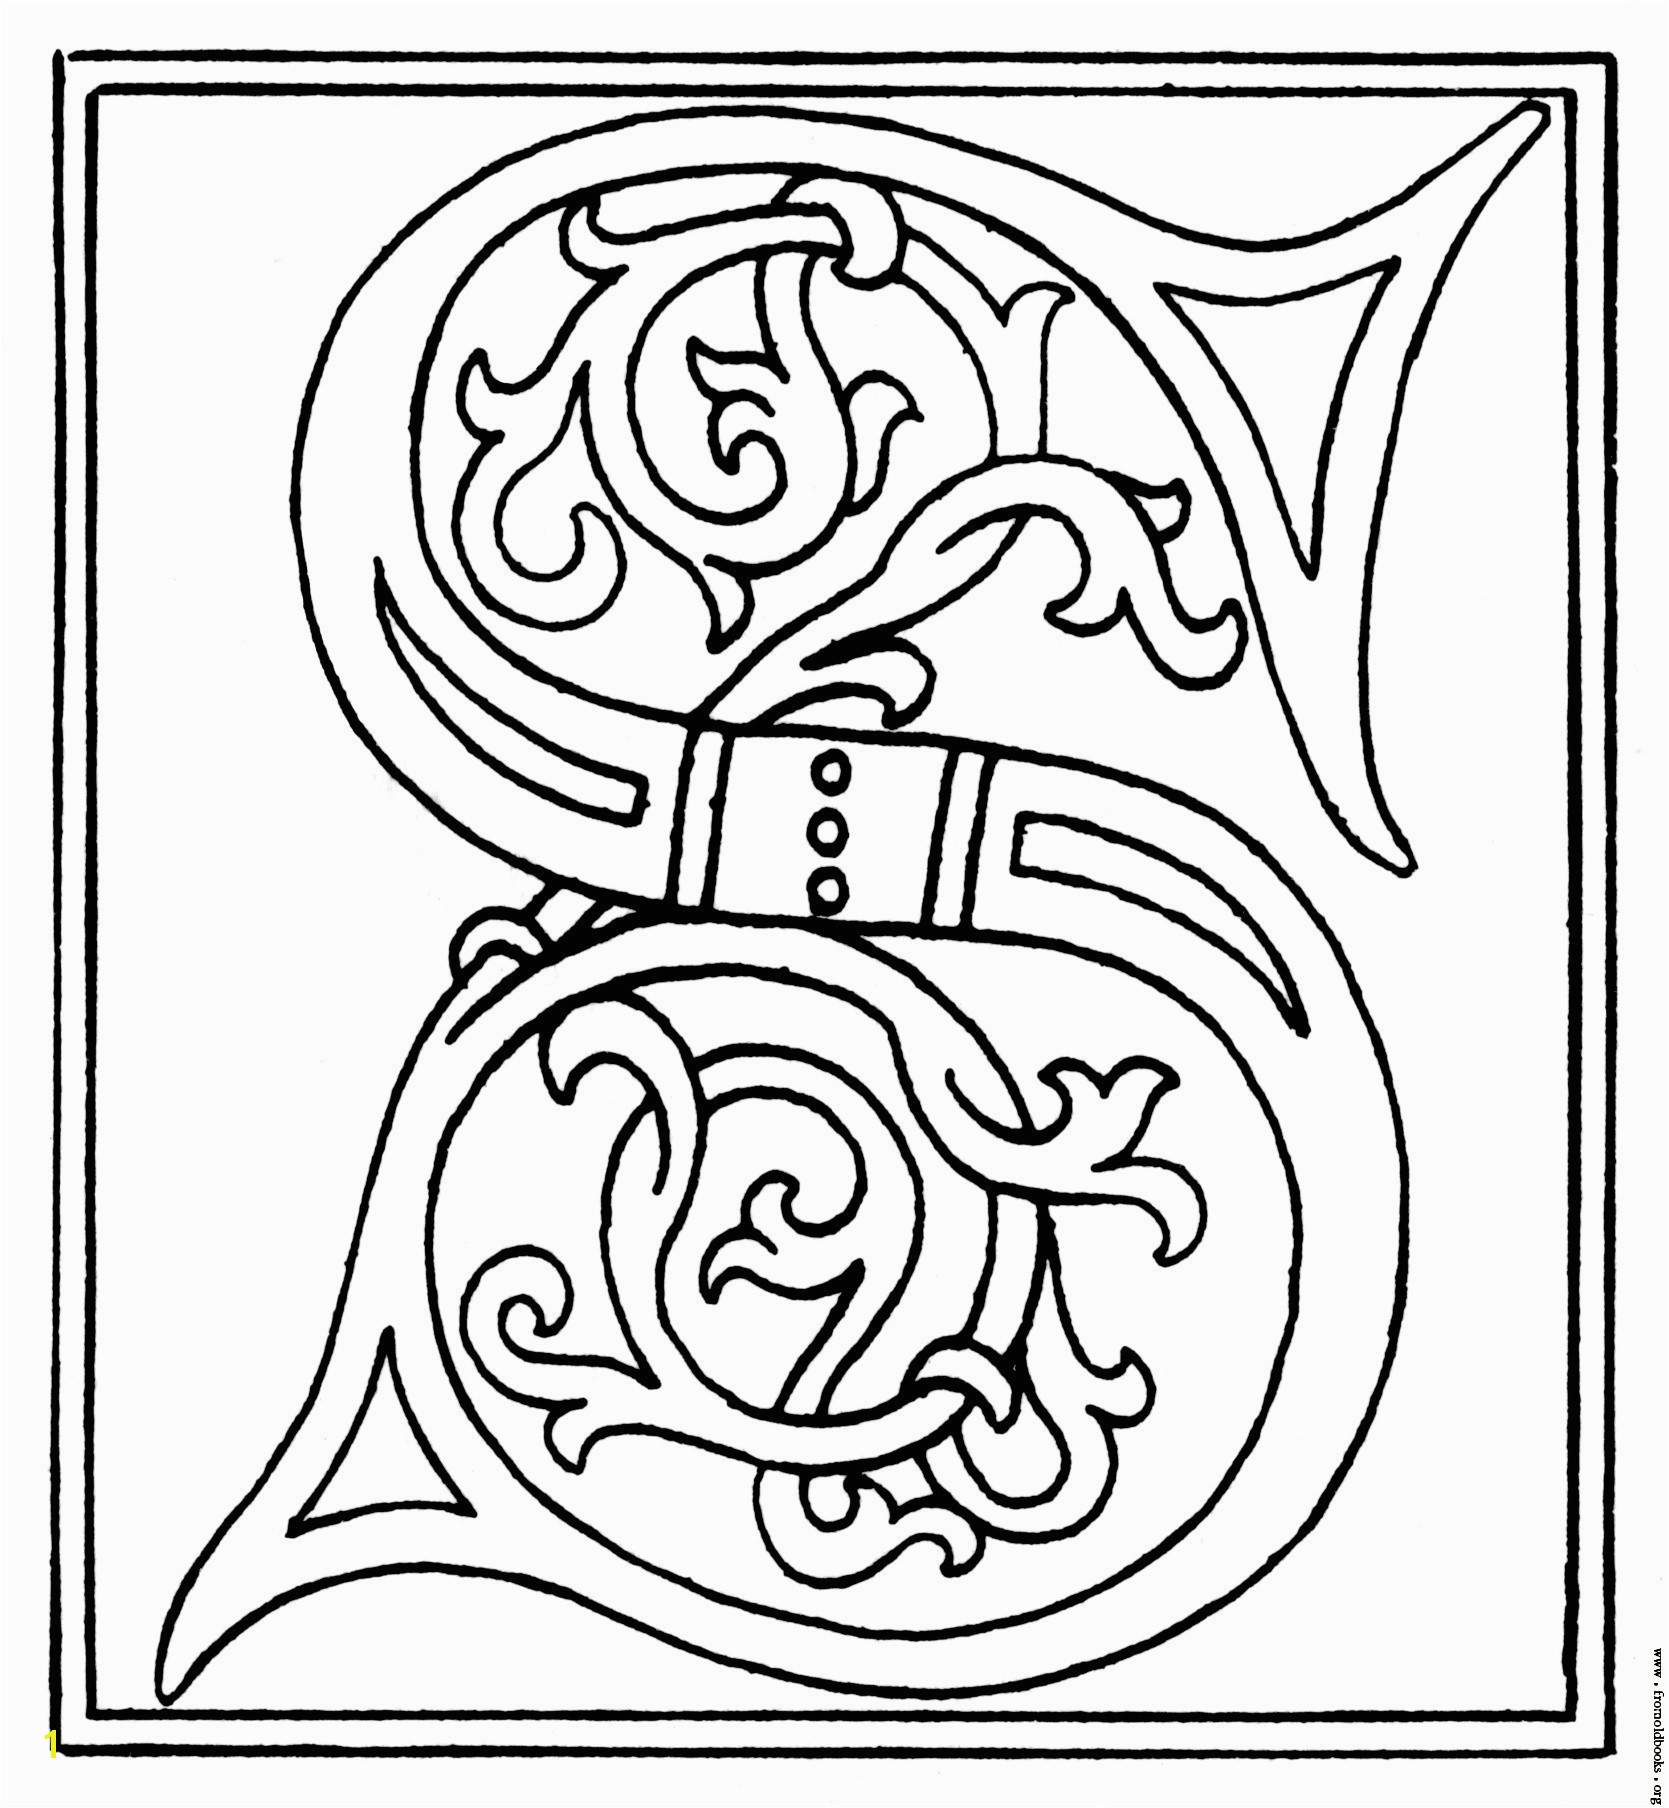 Book Kells Coloring Pages New Inspiration Book Kells Coloring Pages Bing Print Out Leri